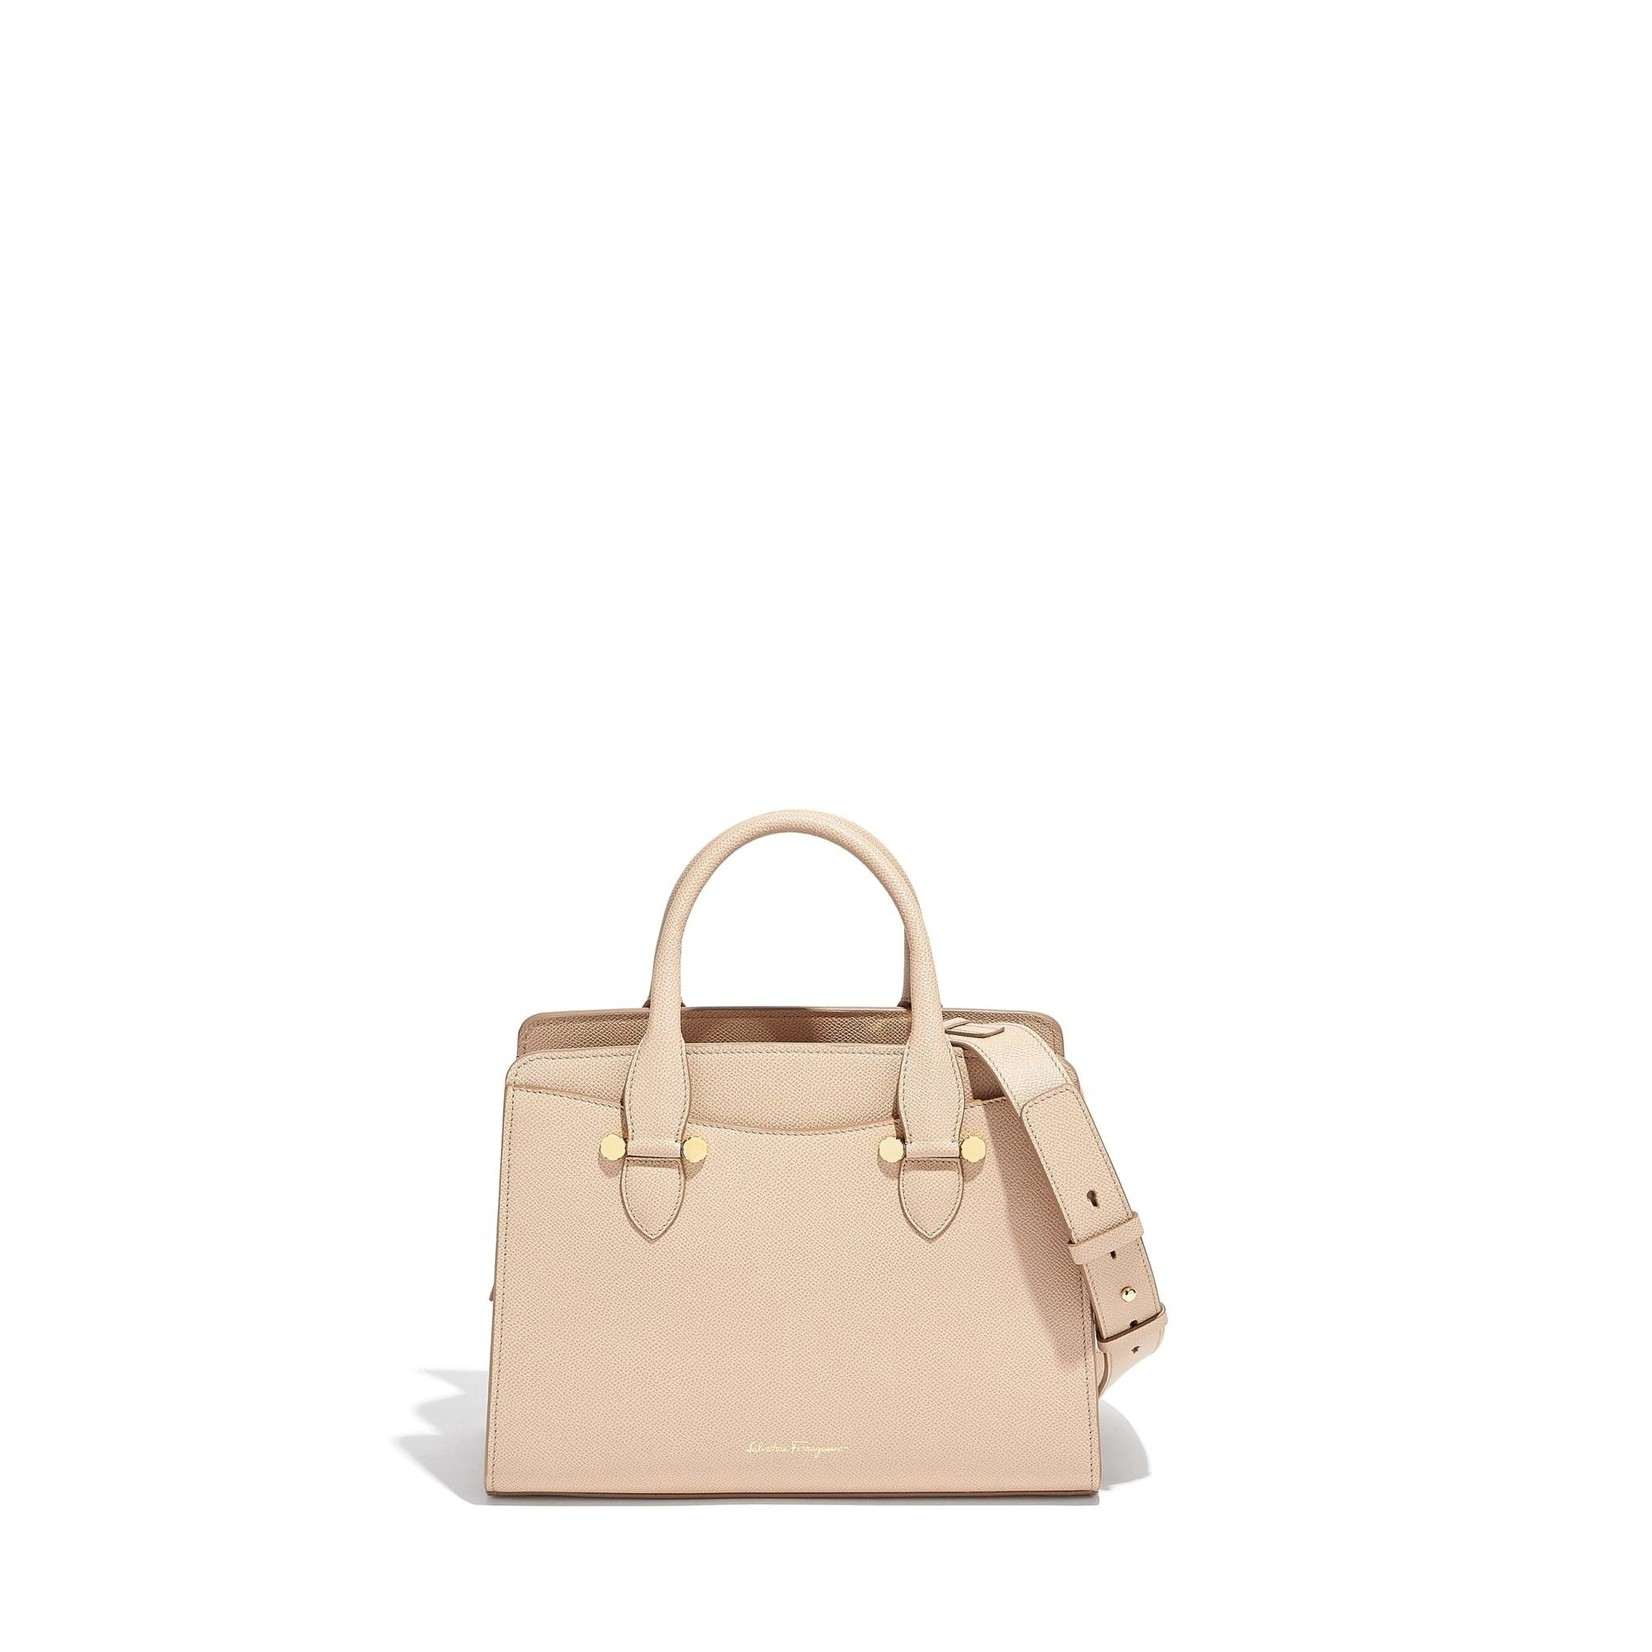 SALVATORE FERRAGAMO SALVATORE FERRAGAMO - HANDBAG TODAY - 684045